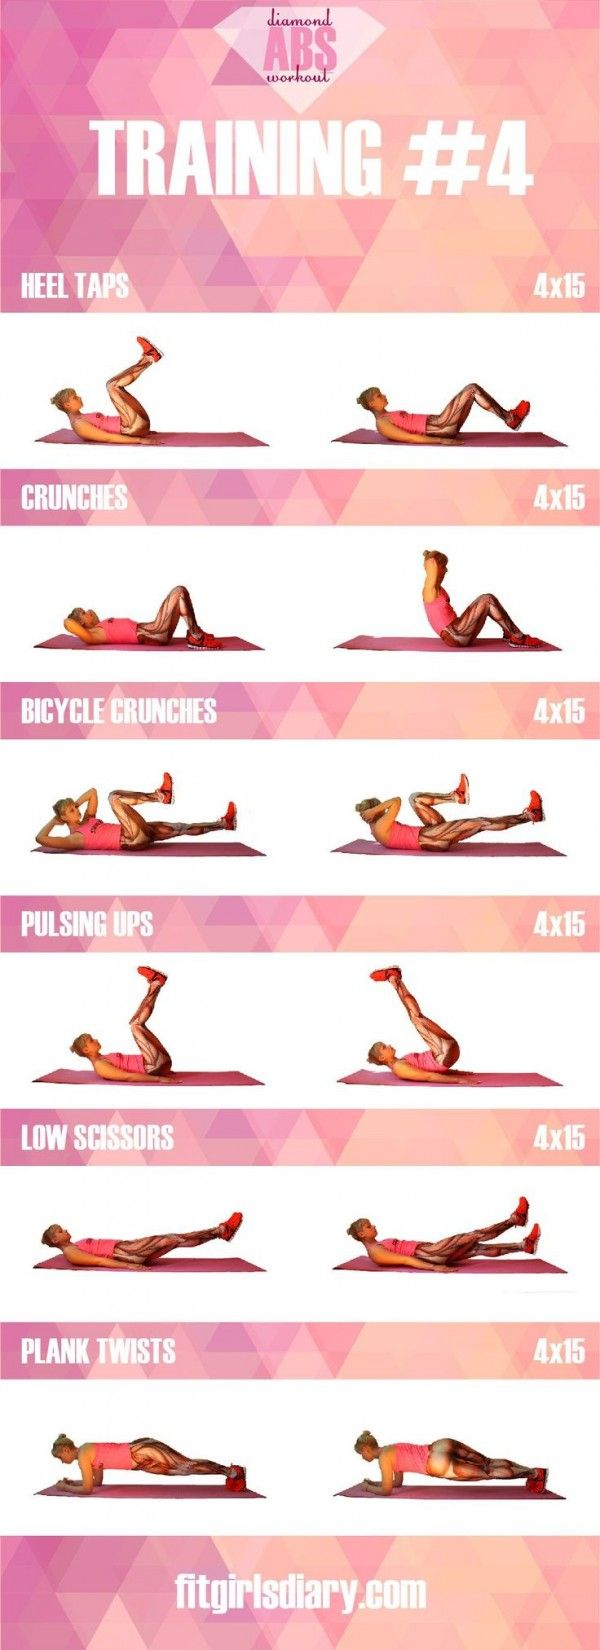 Check out the Diamond Abs #Workout | Christmas | Pinterest | For ...